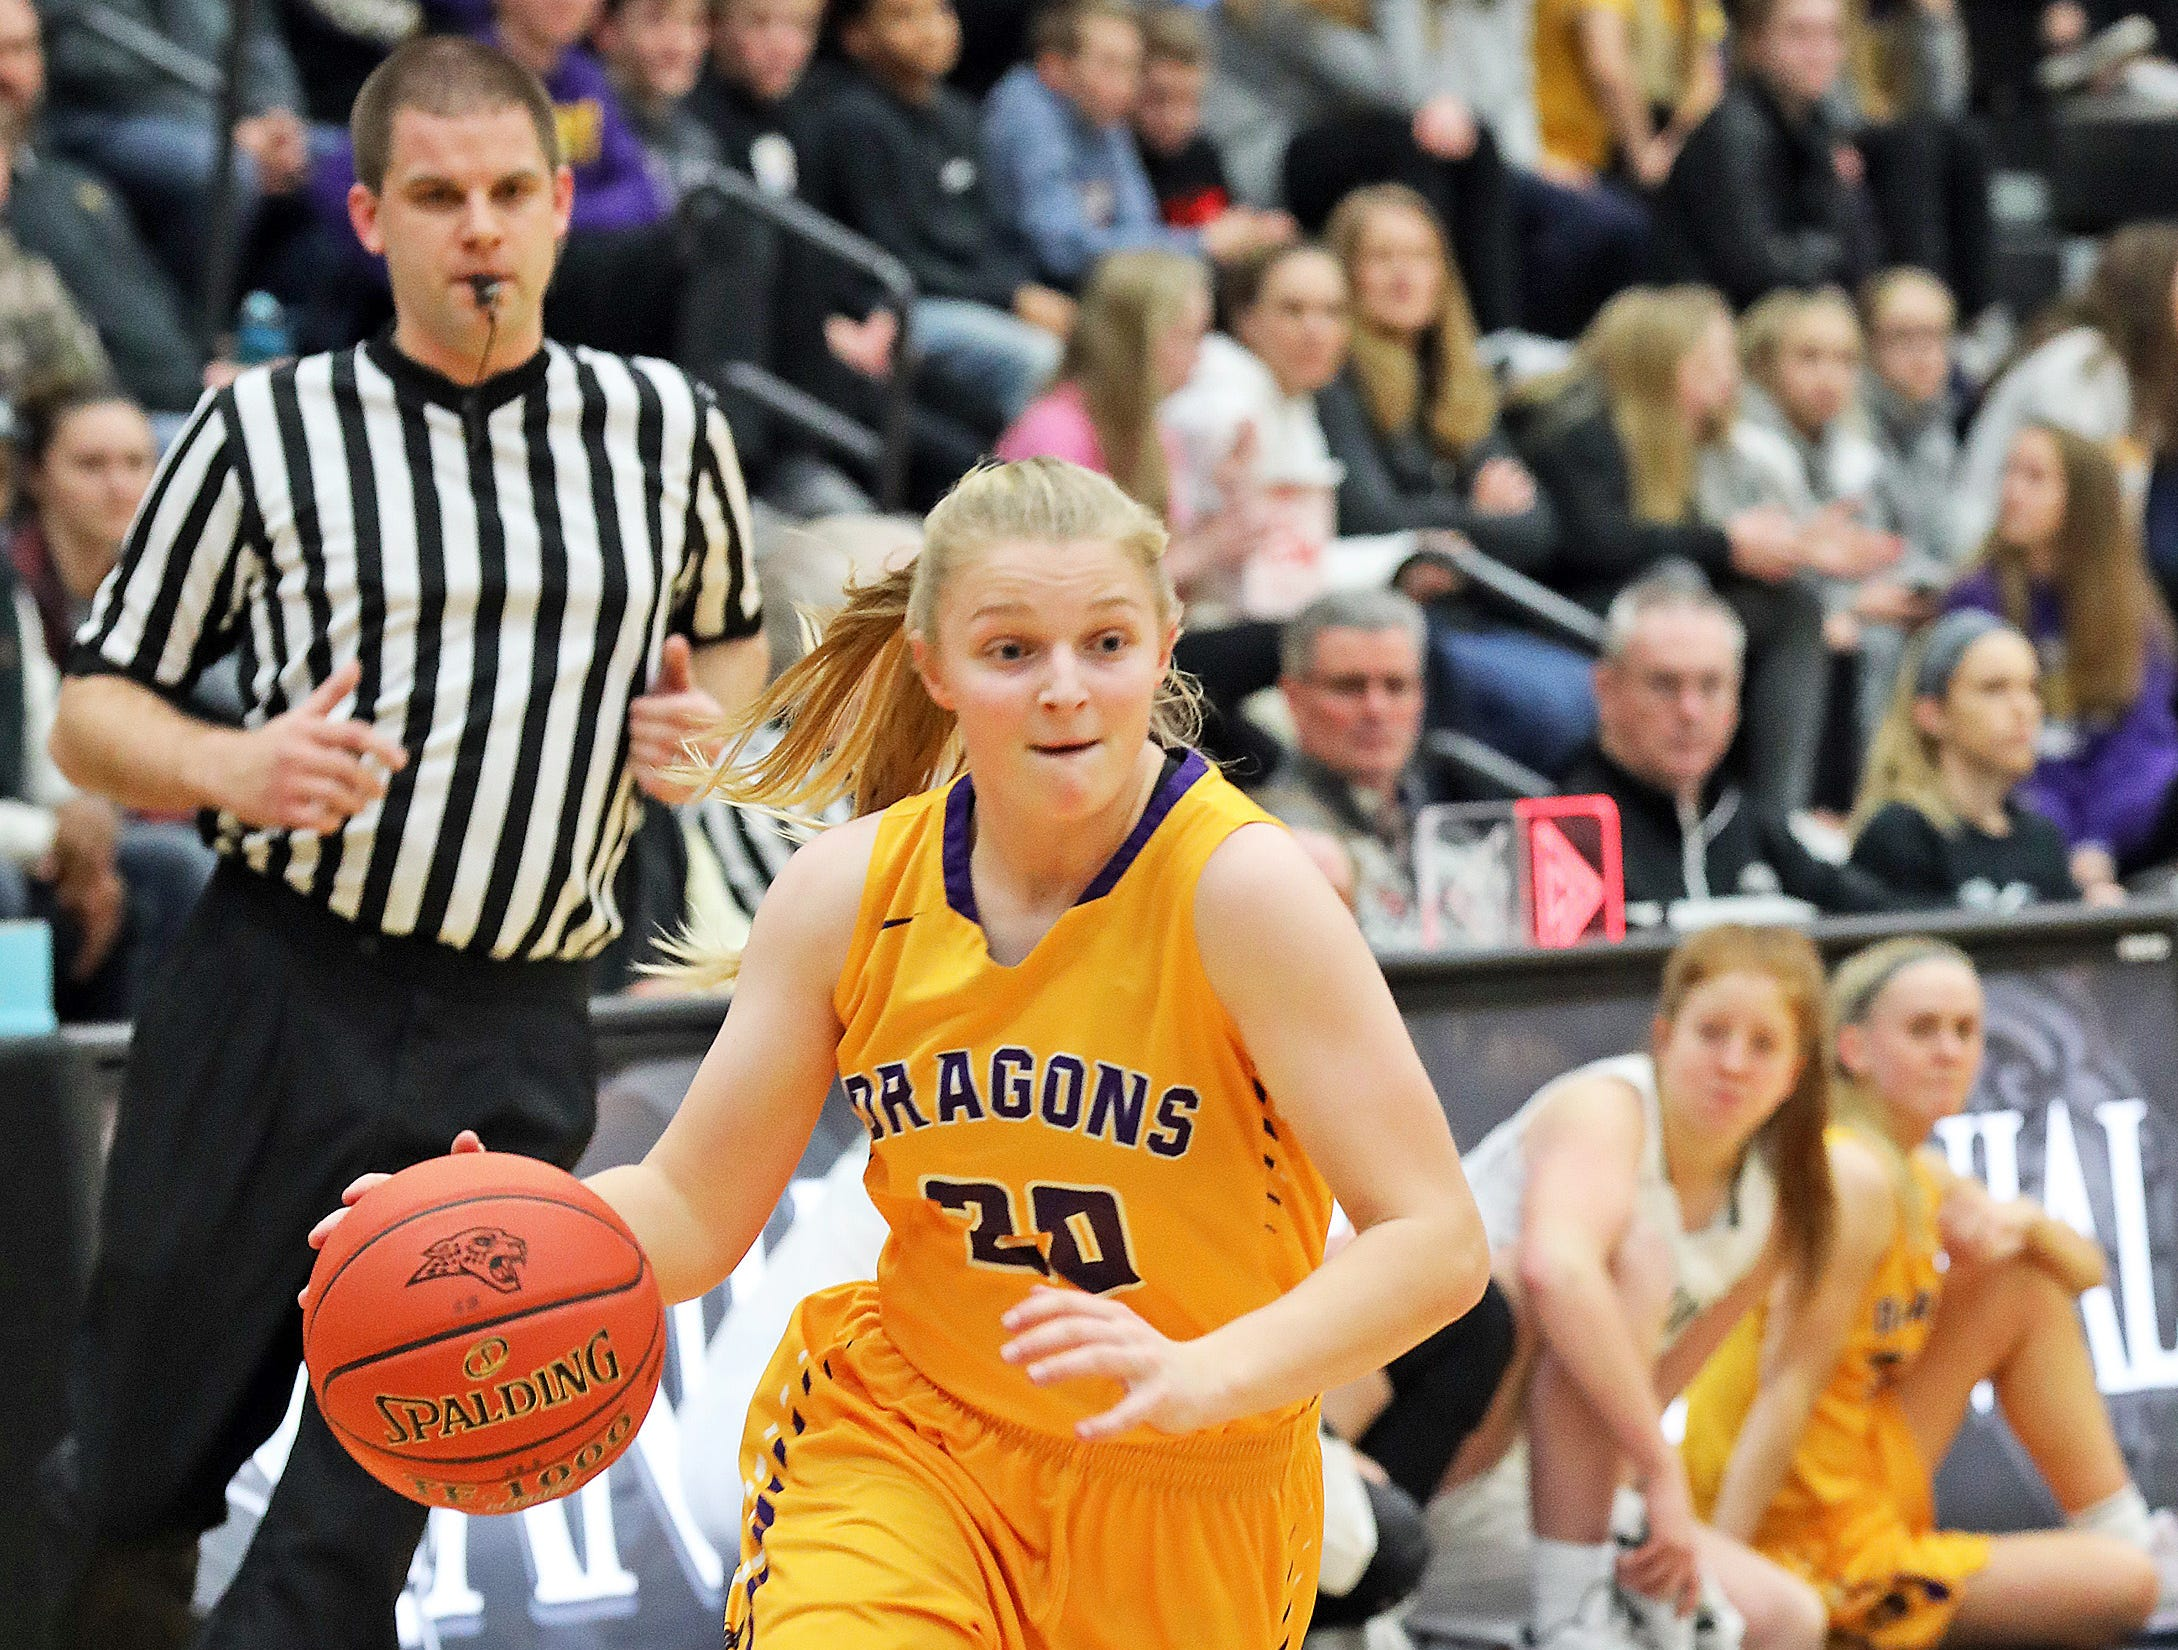 Johnston freshman Anna Gossling drives towards the basket as the Johnston Dragons compete against the Ankeny Centennial Jaguars in high school girls basketball on Friday, Jan. 4, 2019 at Ankeny Centennial High School.